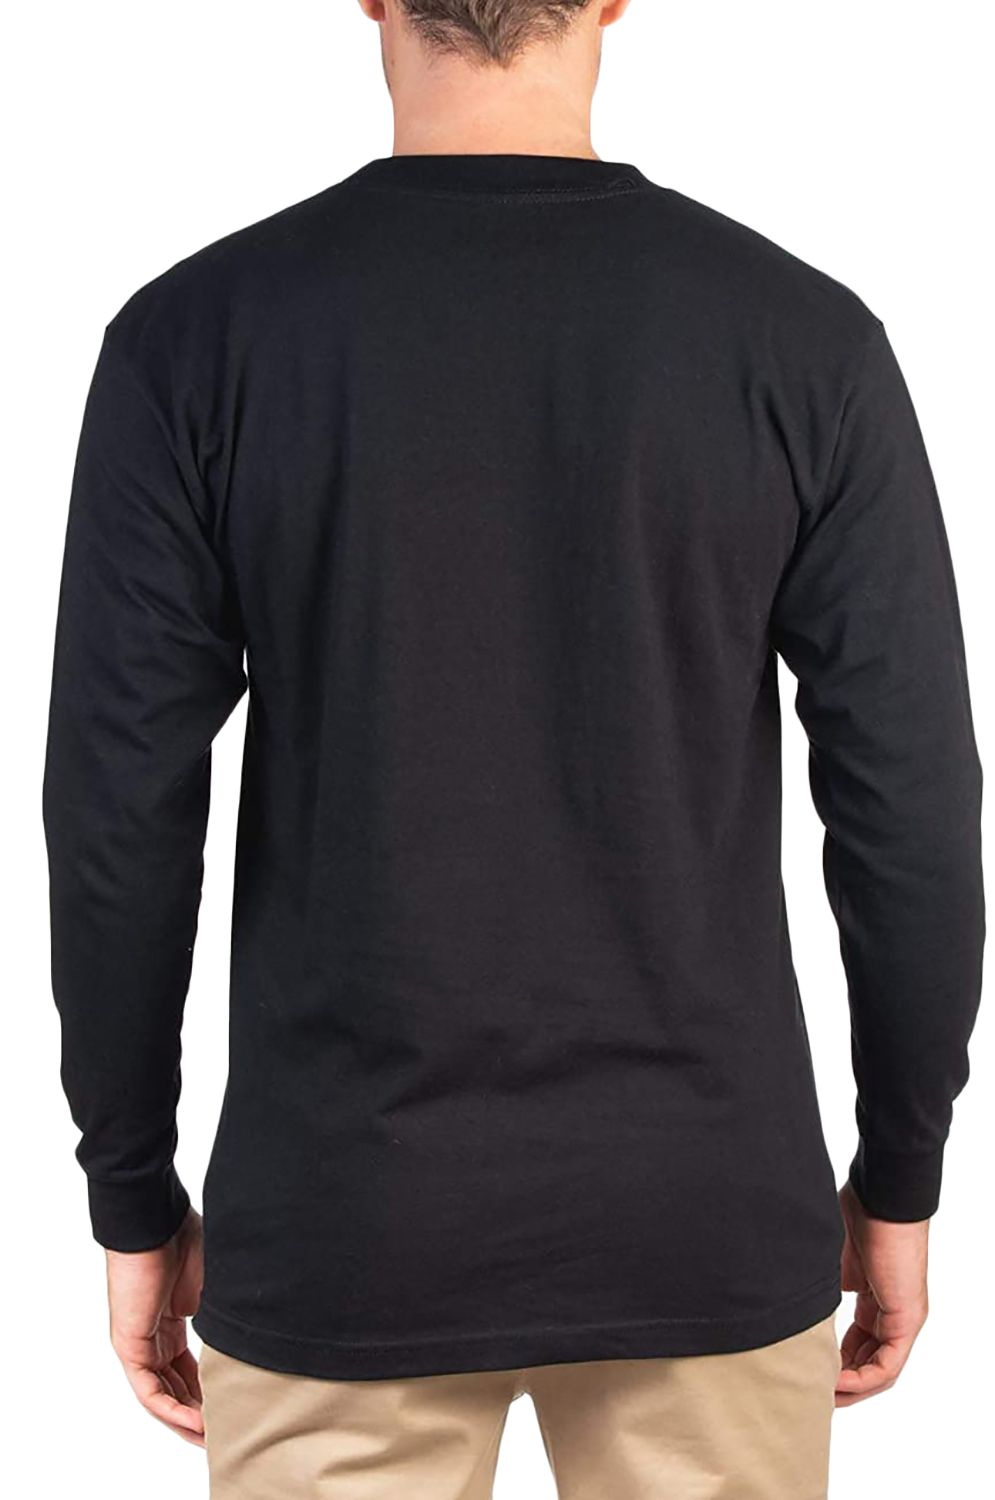 L-Sleeve Hurley M BOXED TEXTURE L/S Black